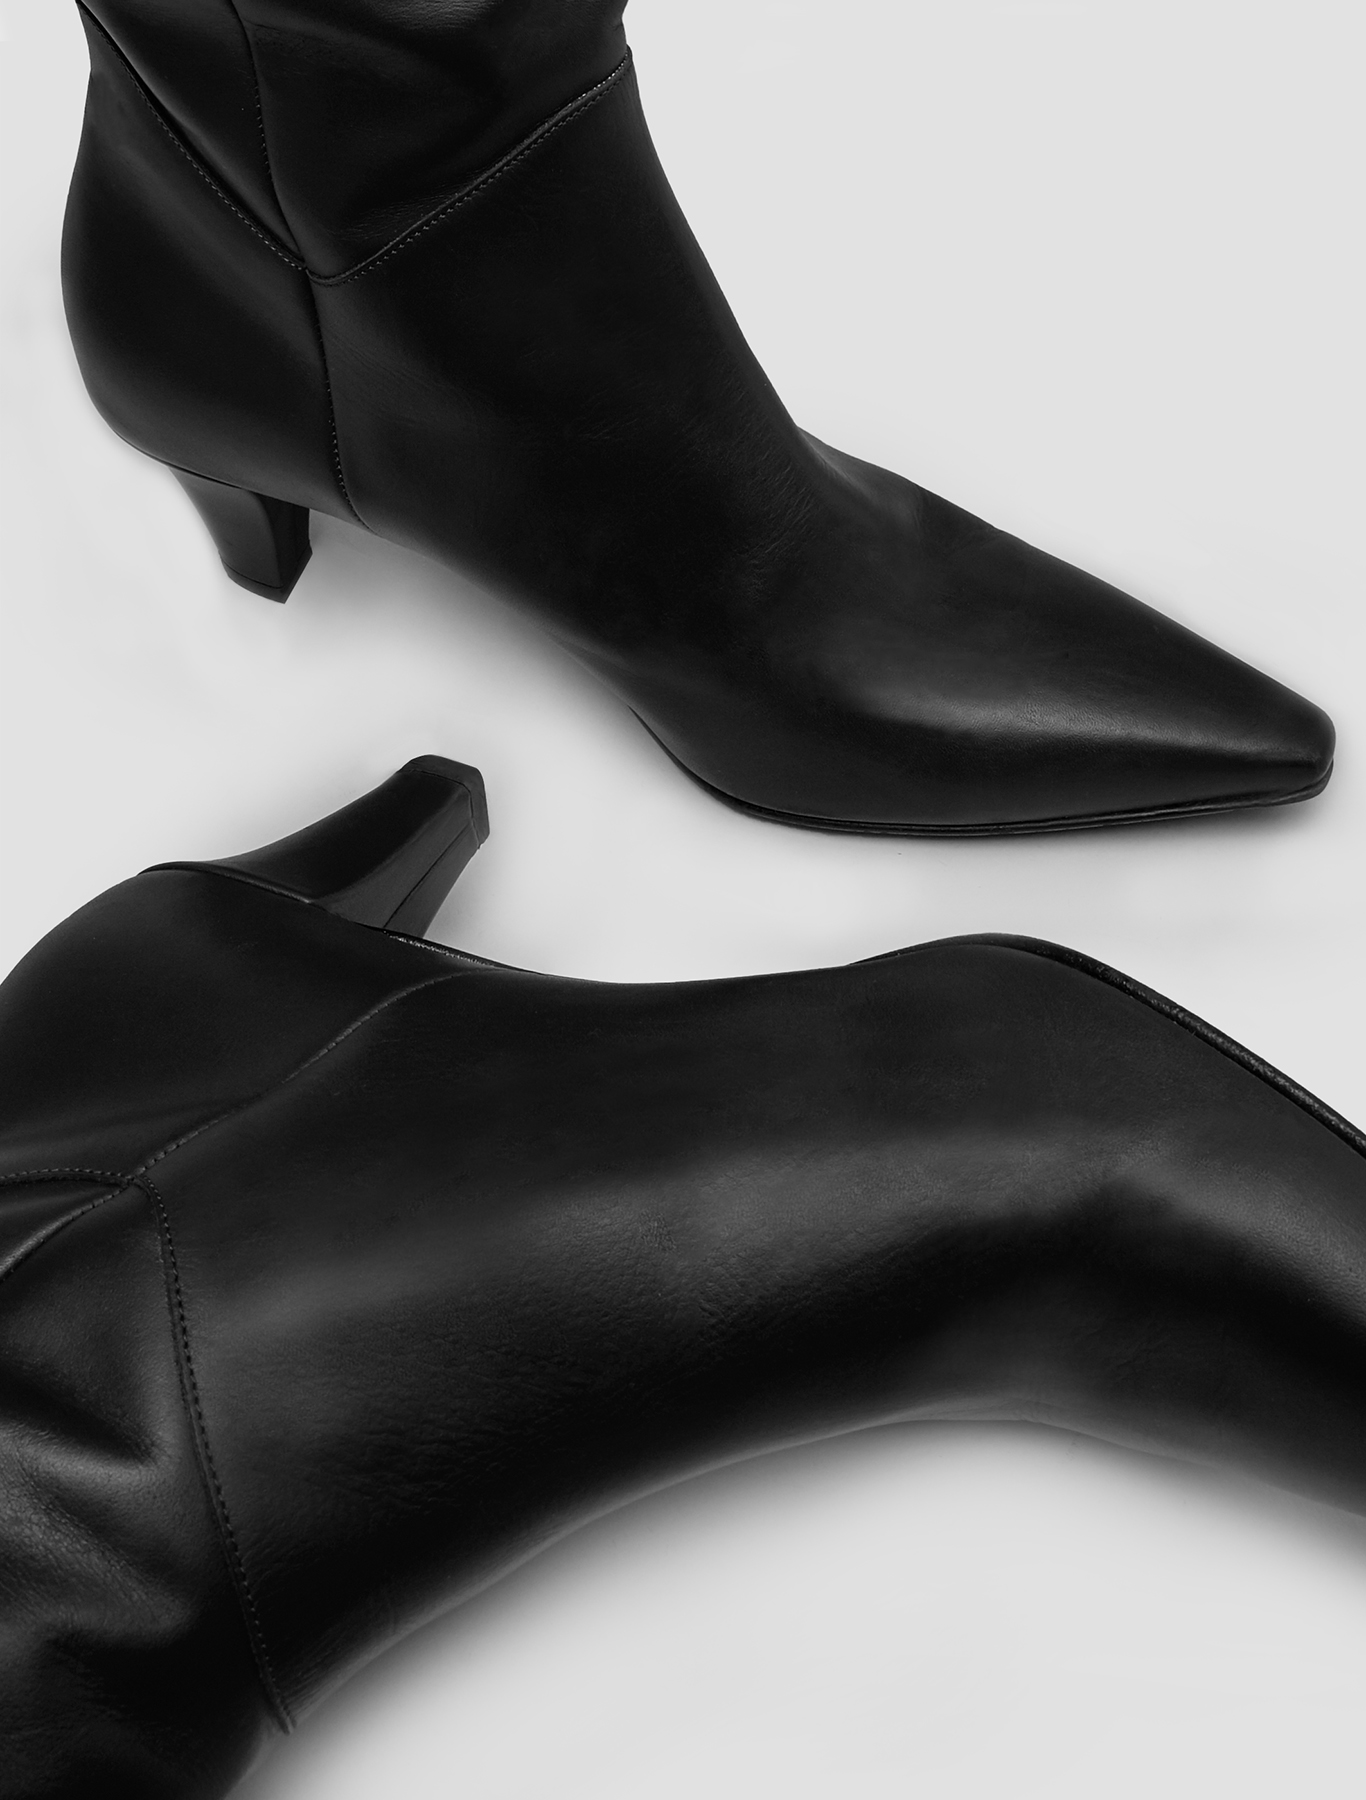 Leather knee-high boots - black - pennyblack